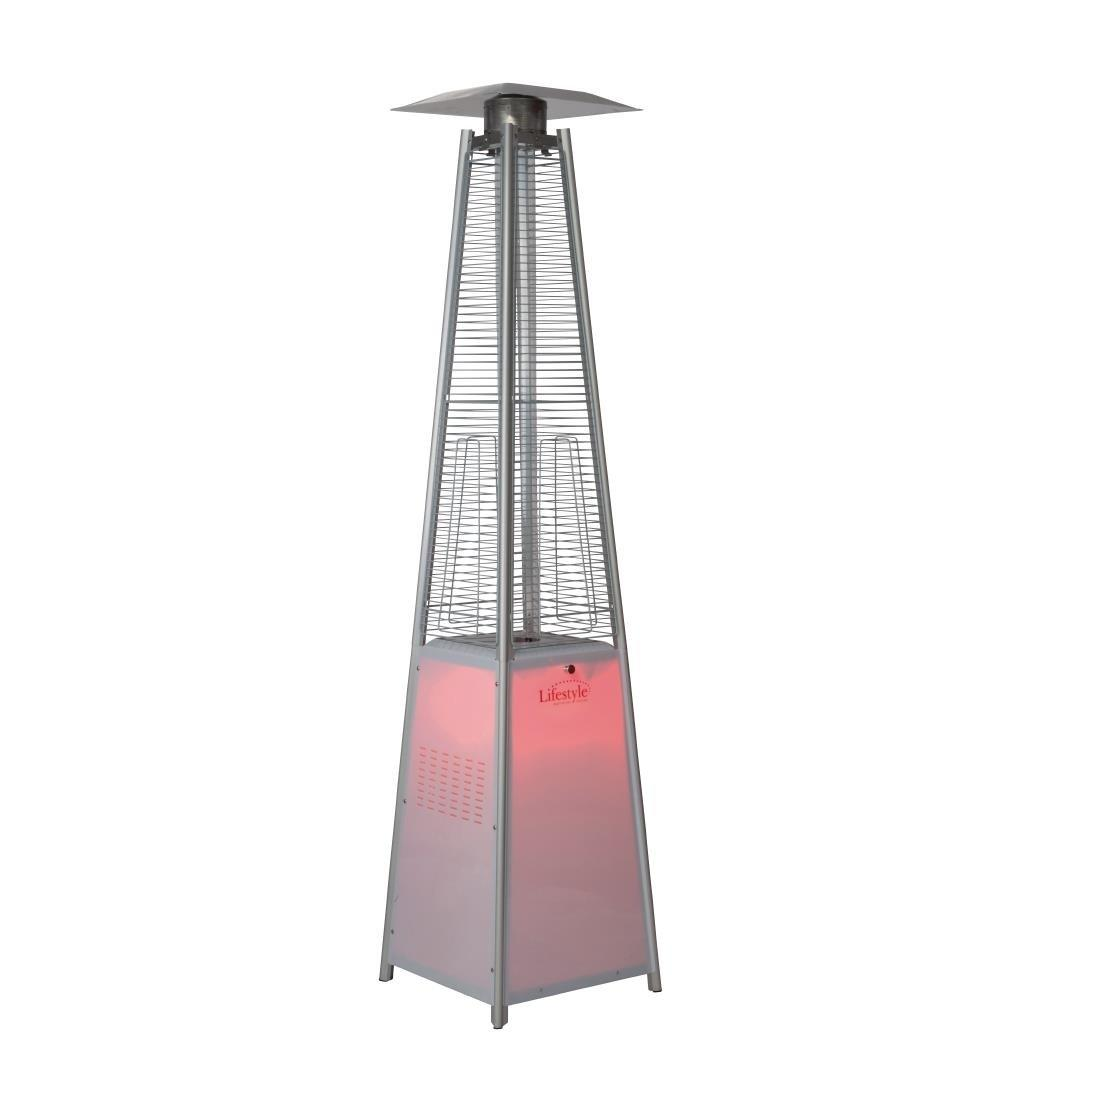 GR336 - Lifestyle Tahiti LED Flame Stainless Steel Patio Heater 13kW - Each - GR336